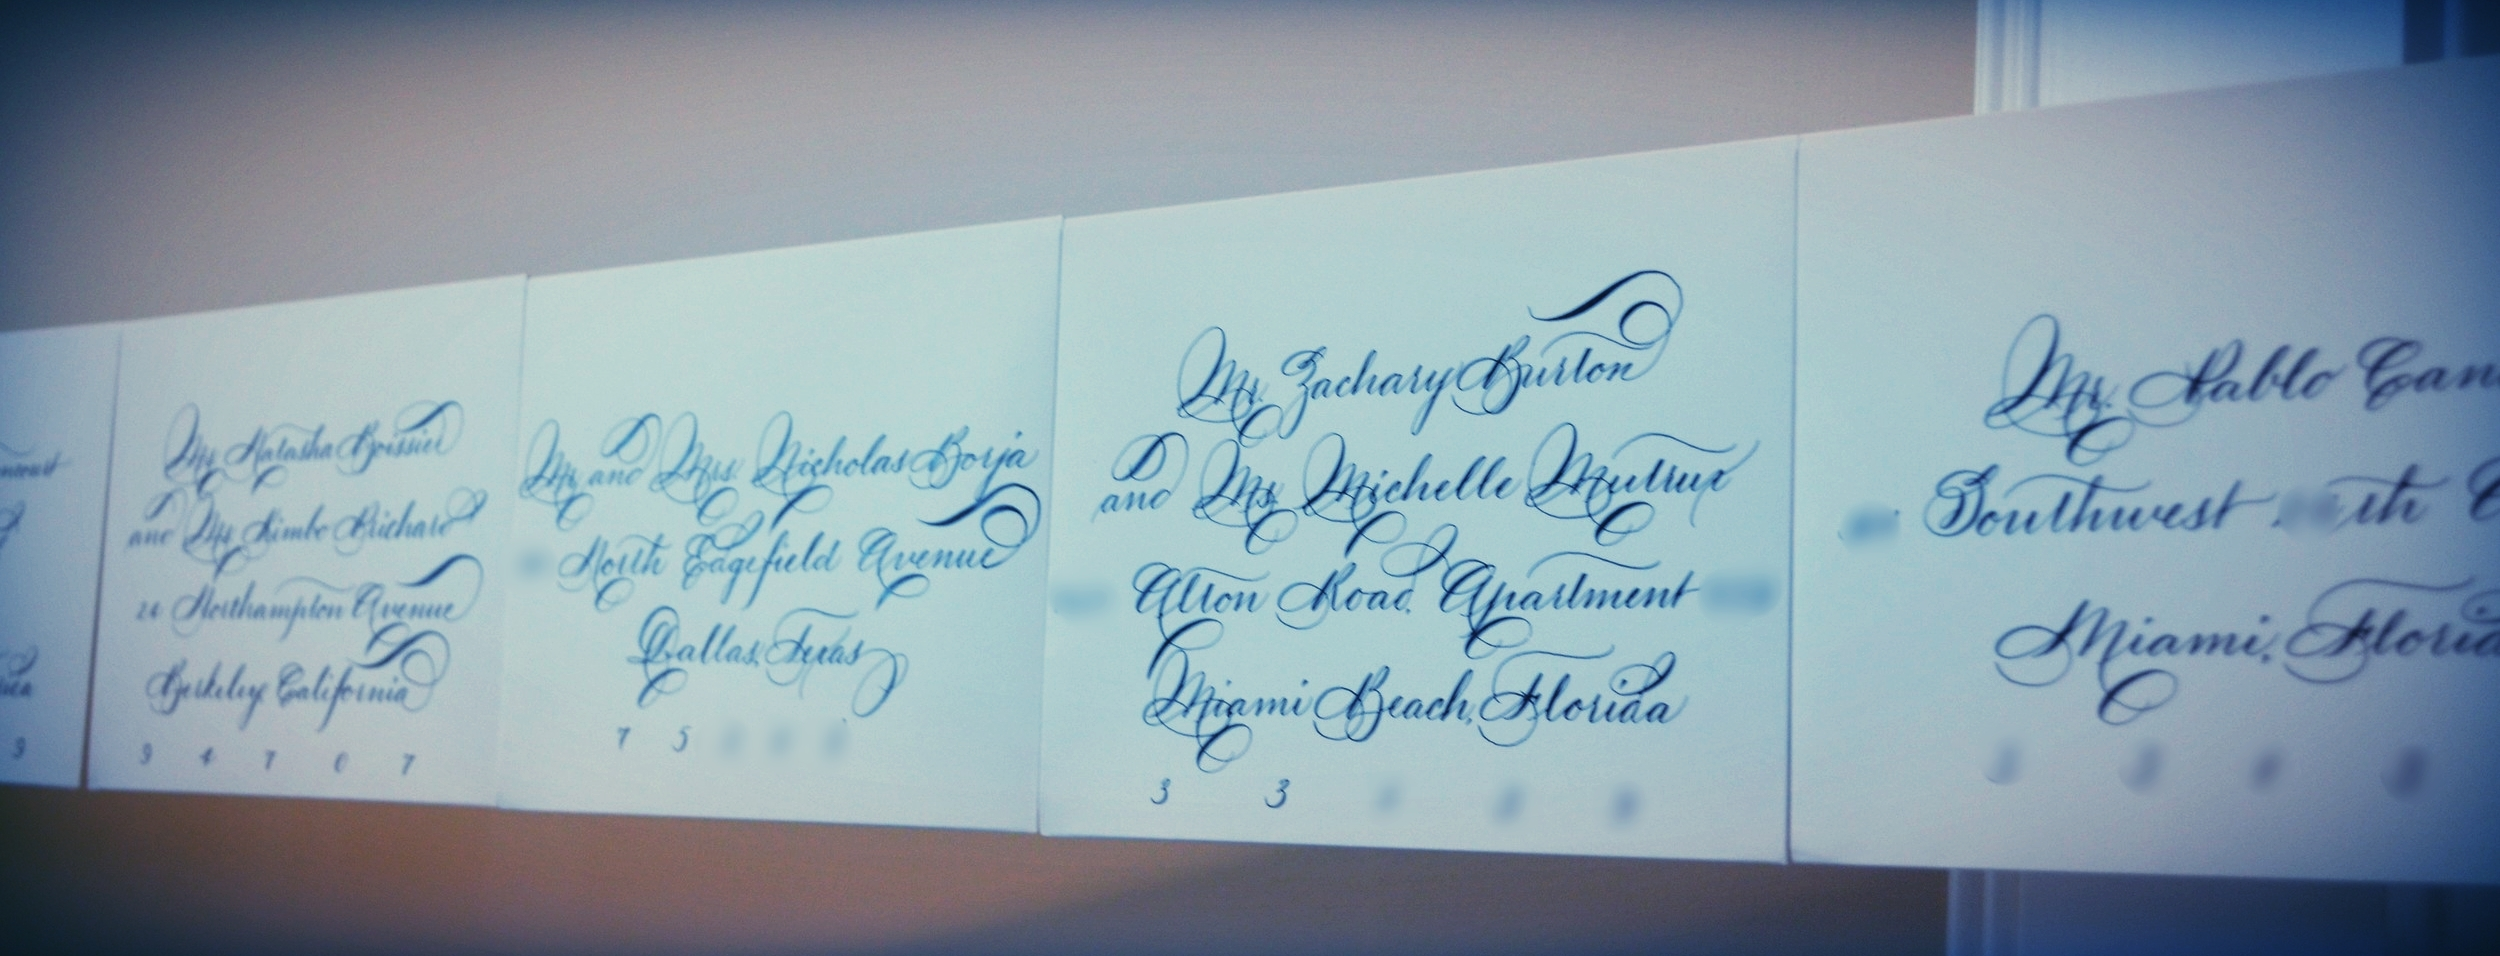 Houston Calligraphy Calligrapher 1 Sept 2015 1.jpg